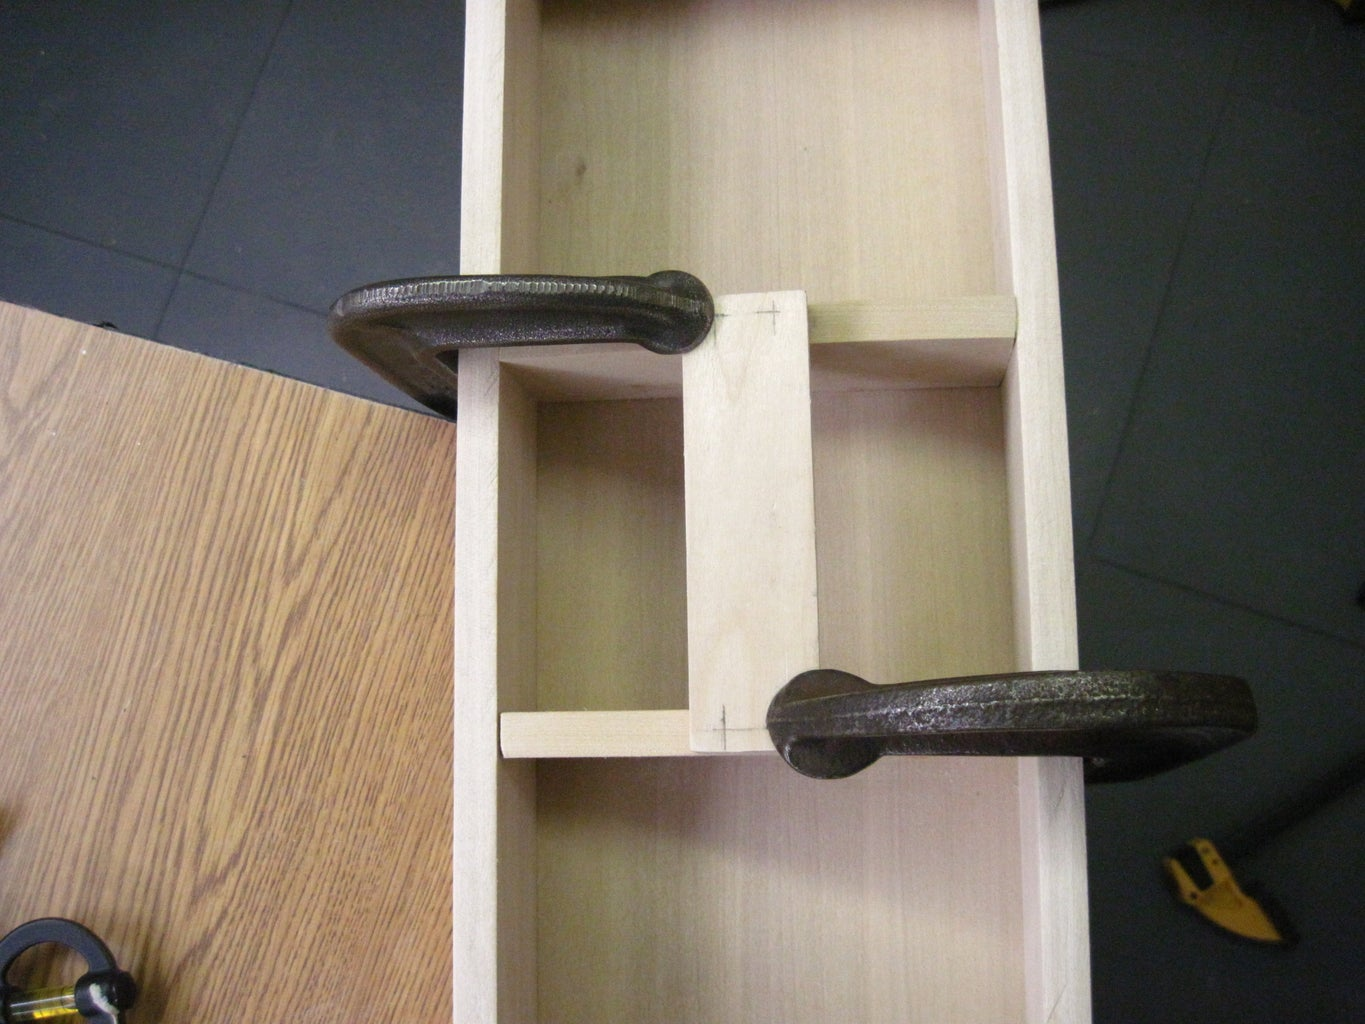 Tray Assembly- Sides, Dividers, and Handle